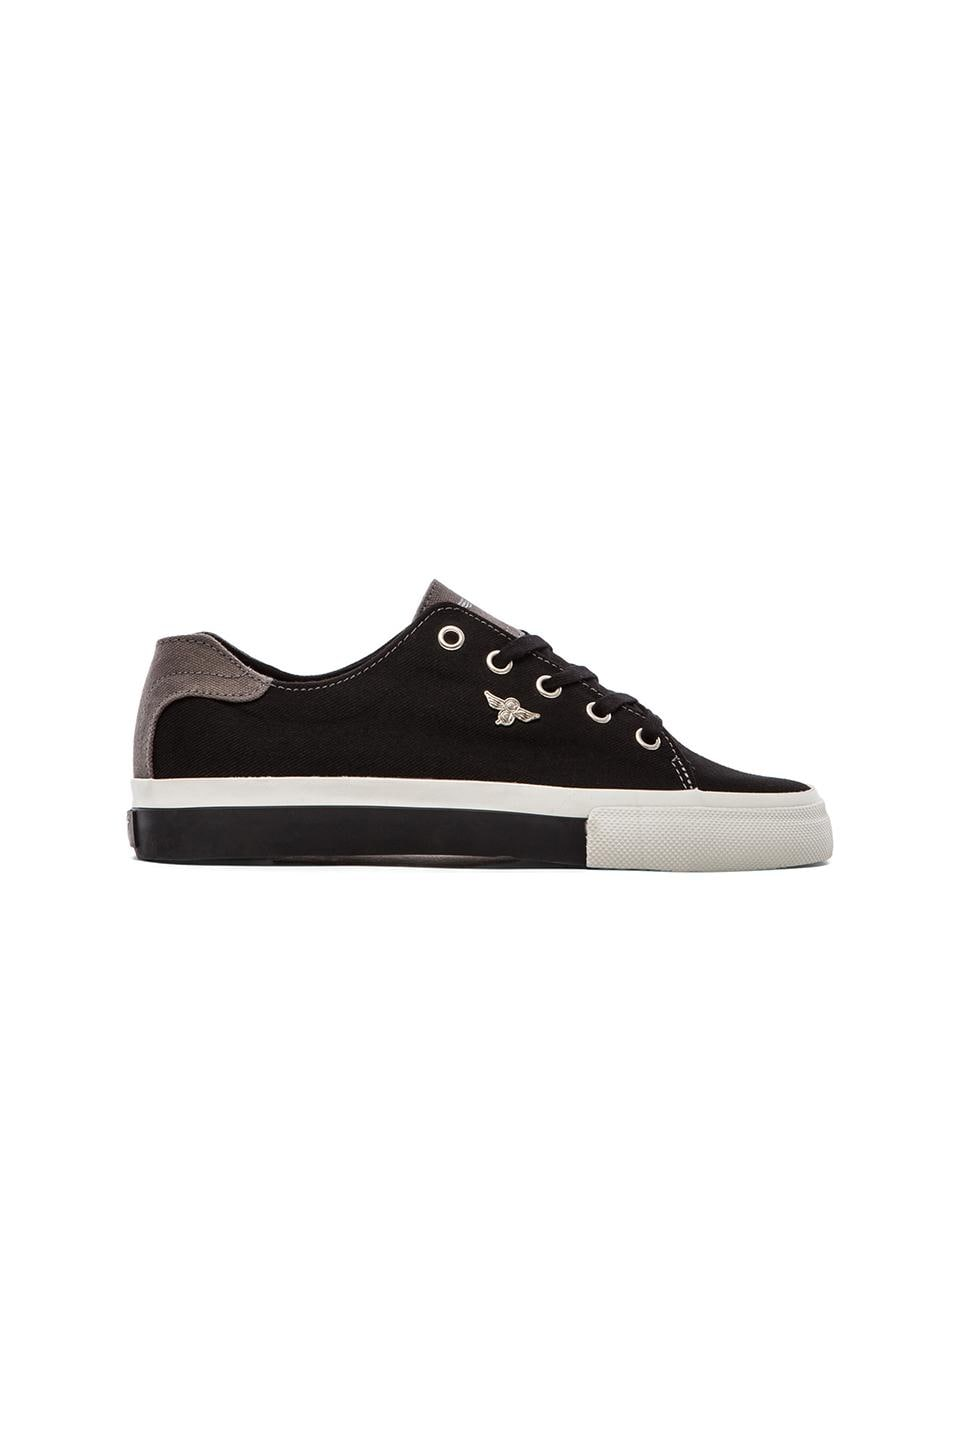 Creative Recreation Kaplan Sneaker in Black